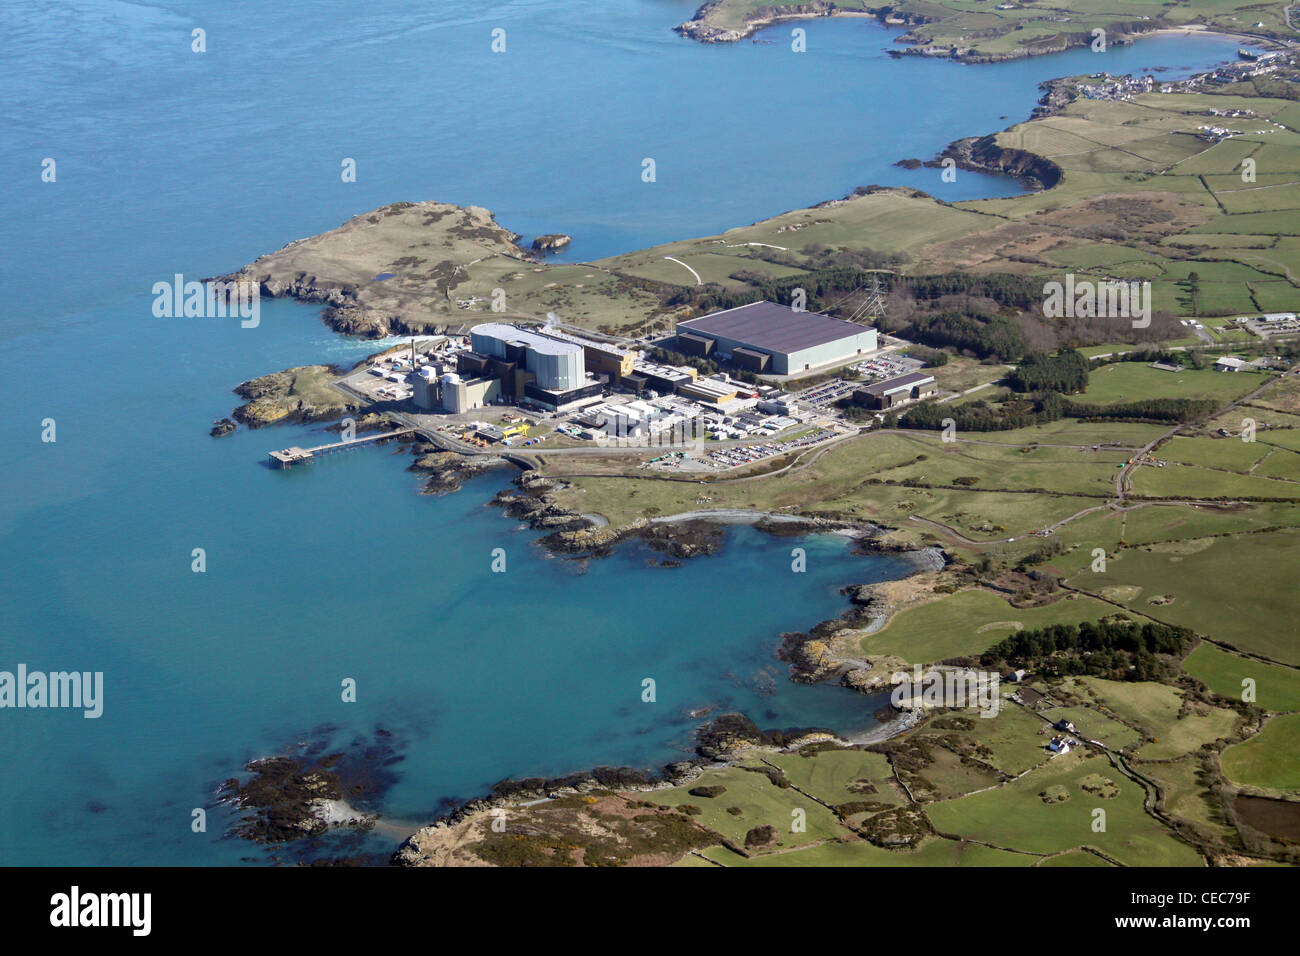 Aerial image of Wylfa Nuclear Power Station, Wylfa Head, Anglesey, North Wales, sometimes referred to as Wilfa - Stock Image